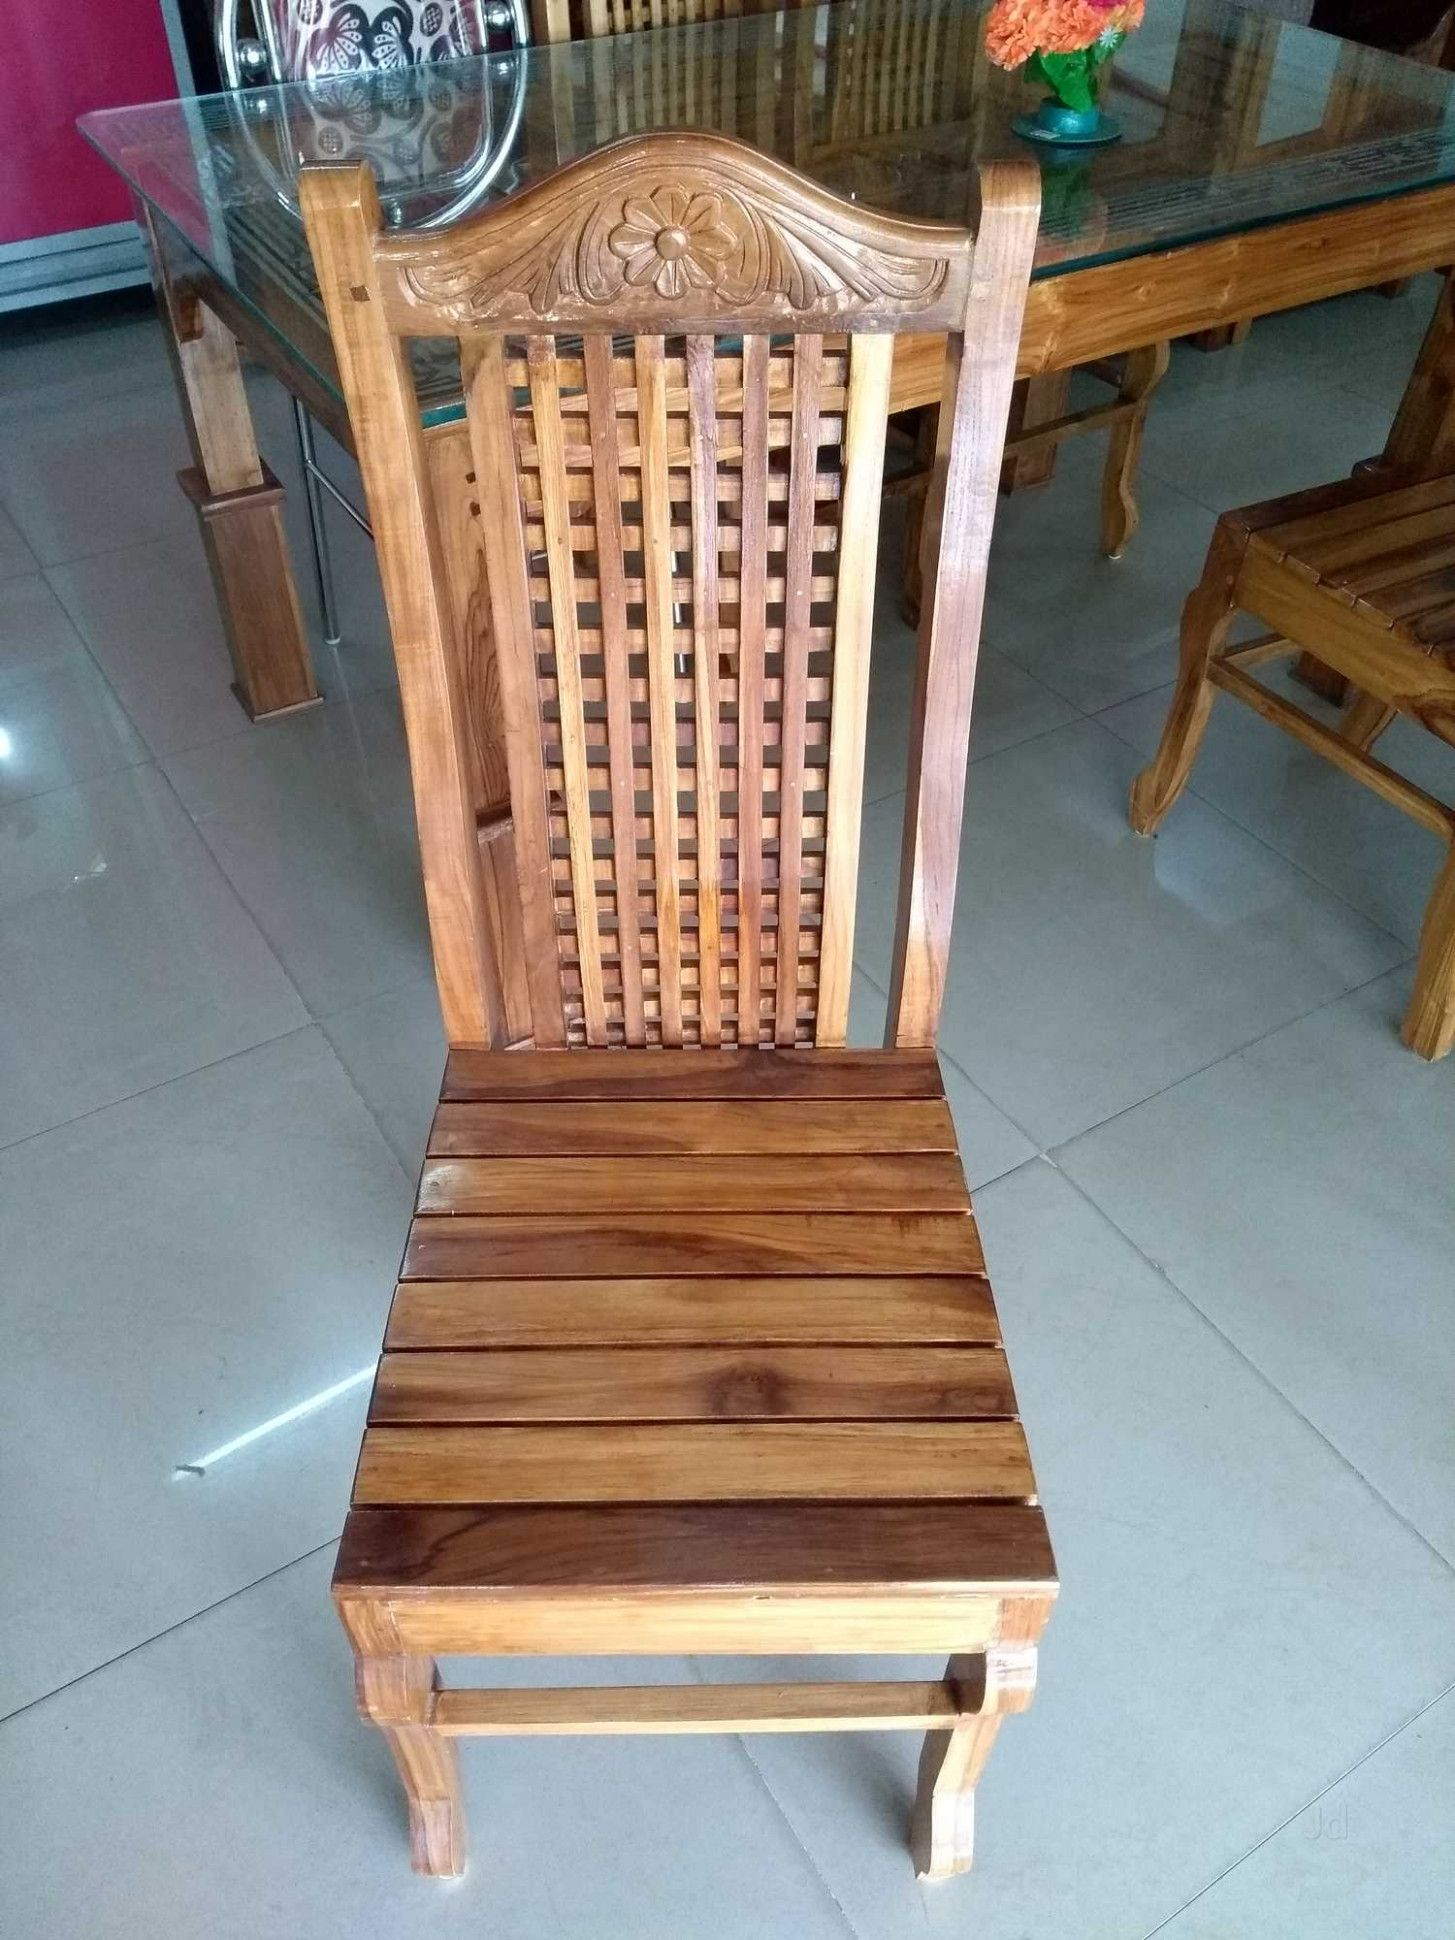 Nandanam Teak Furnitures Whitefield Teak Wood Furniture Dealers Teak Wood Furniture